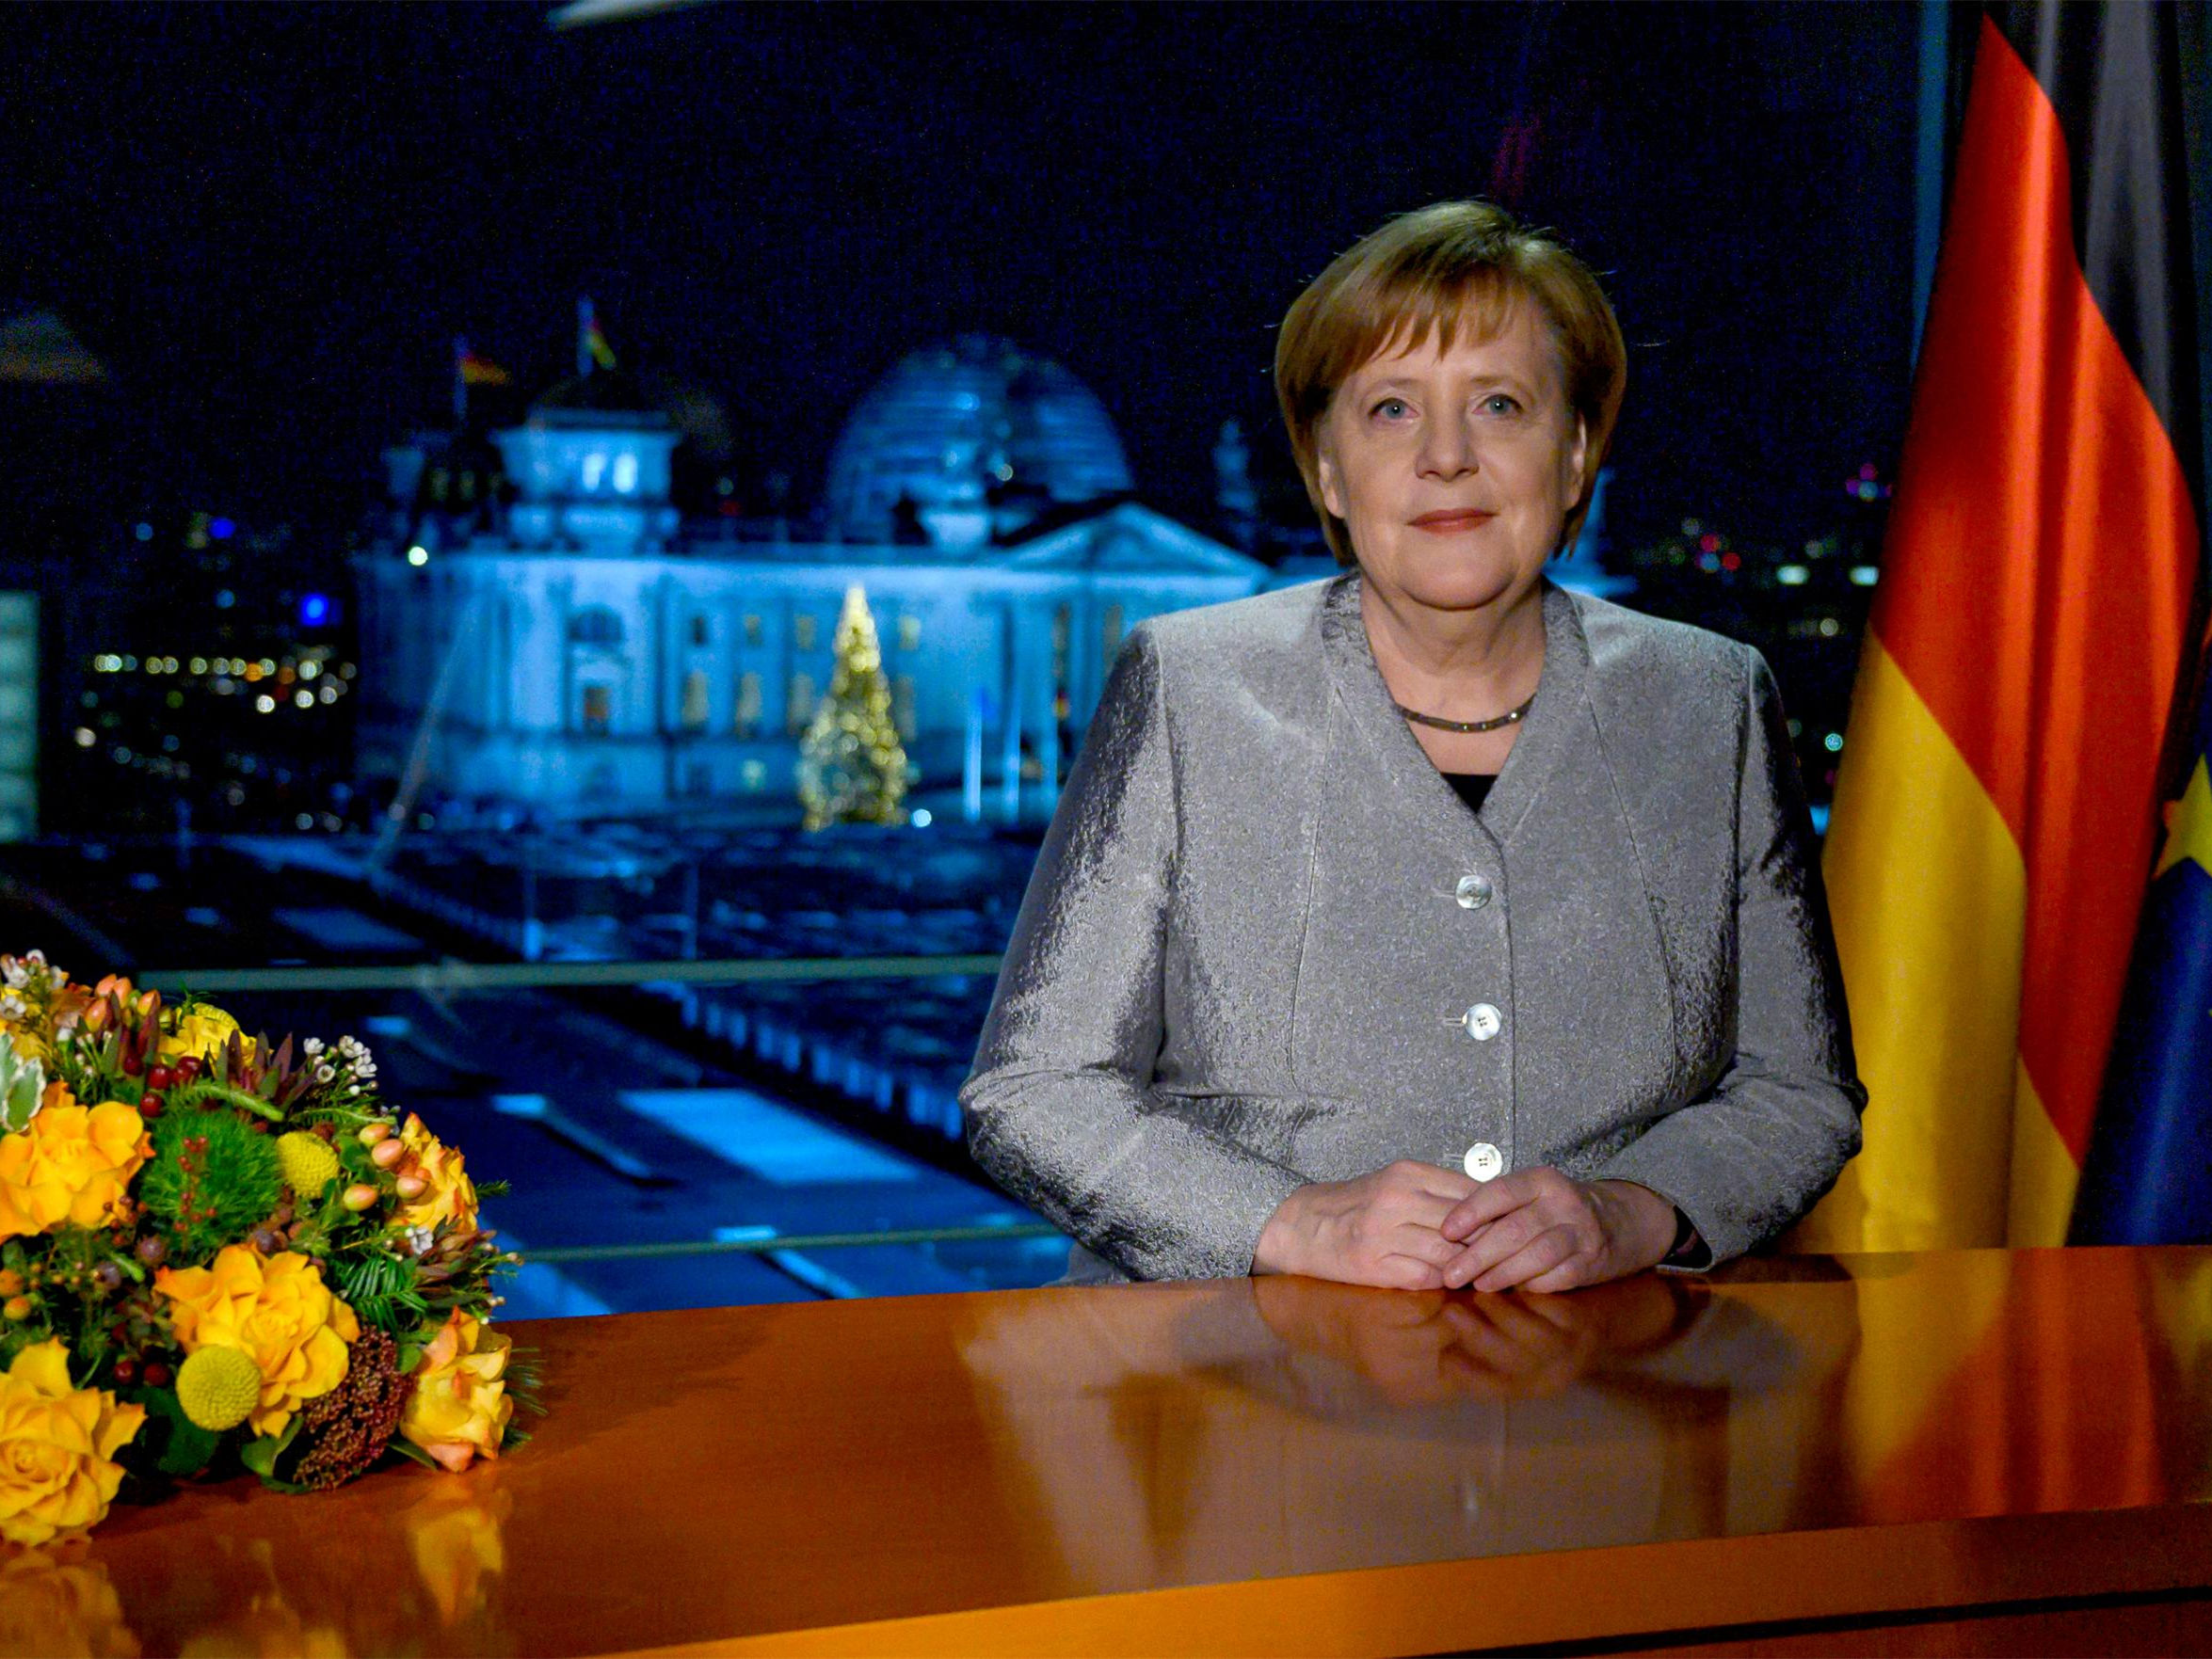 Merkel vows Germany will keep pushing for 'global solutions'